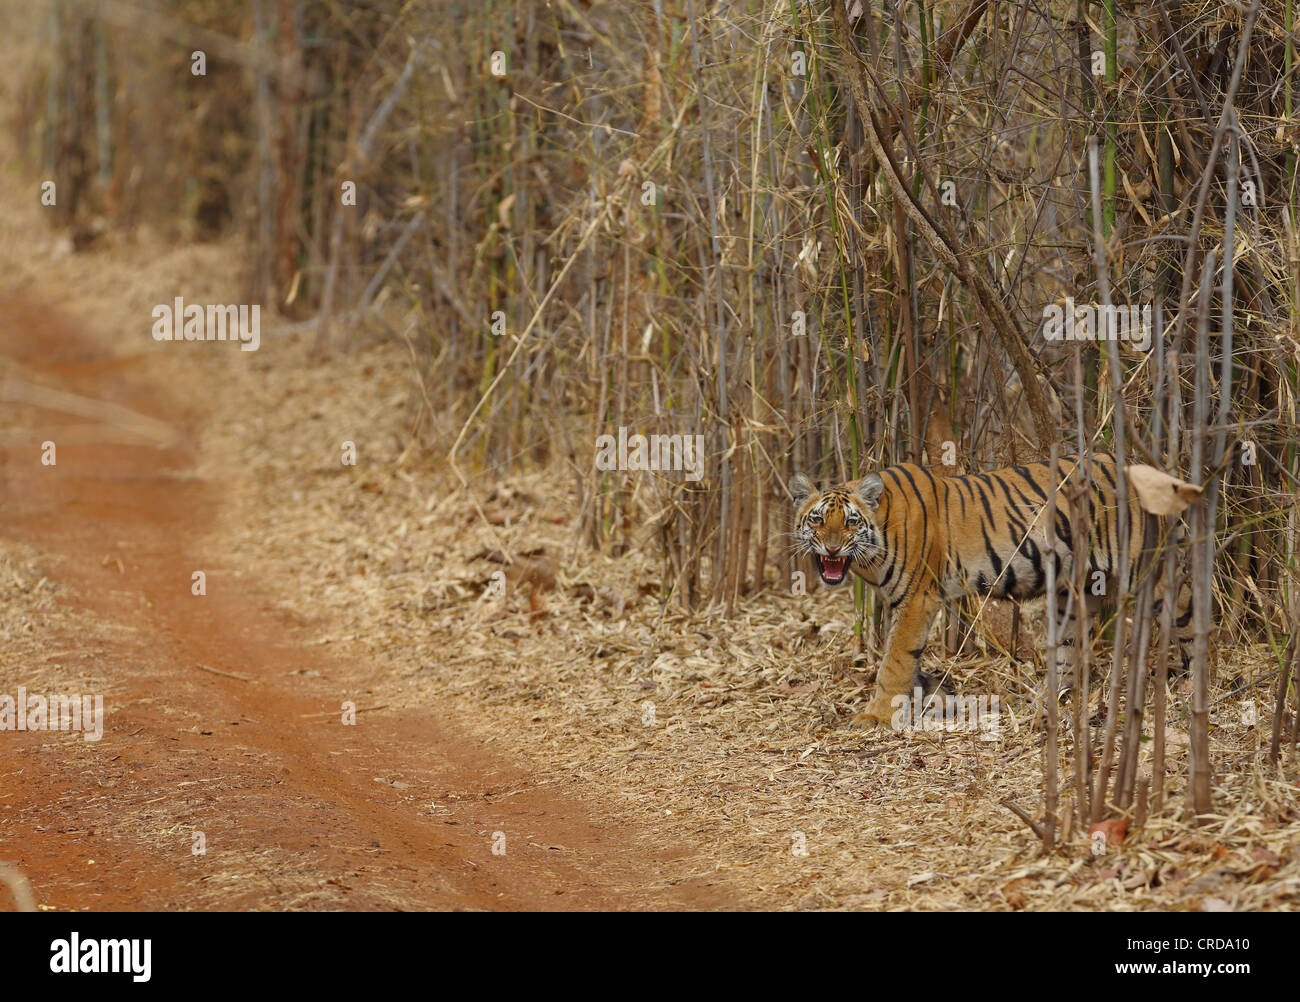 Young Bengal Tiger snarling at photographer before crossing dirt path in Tadoba Tiger Reserve, India - Stock Image